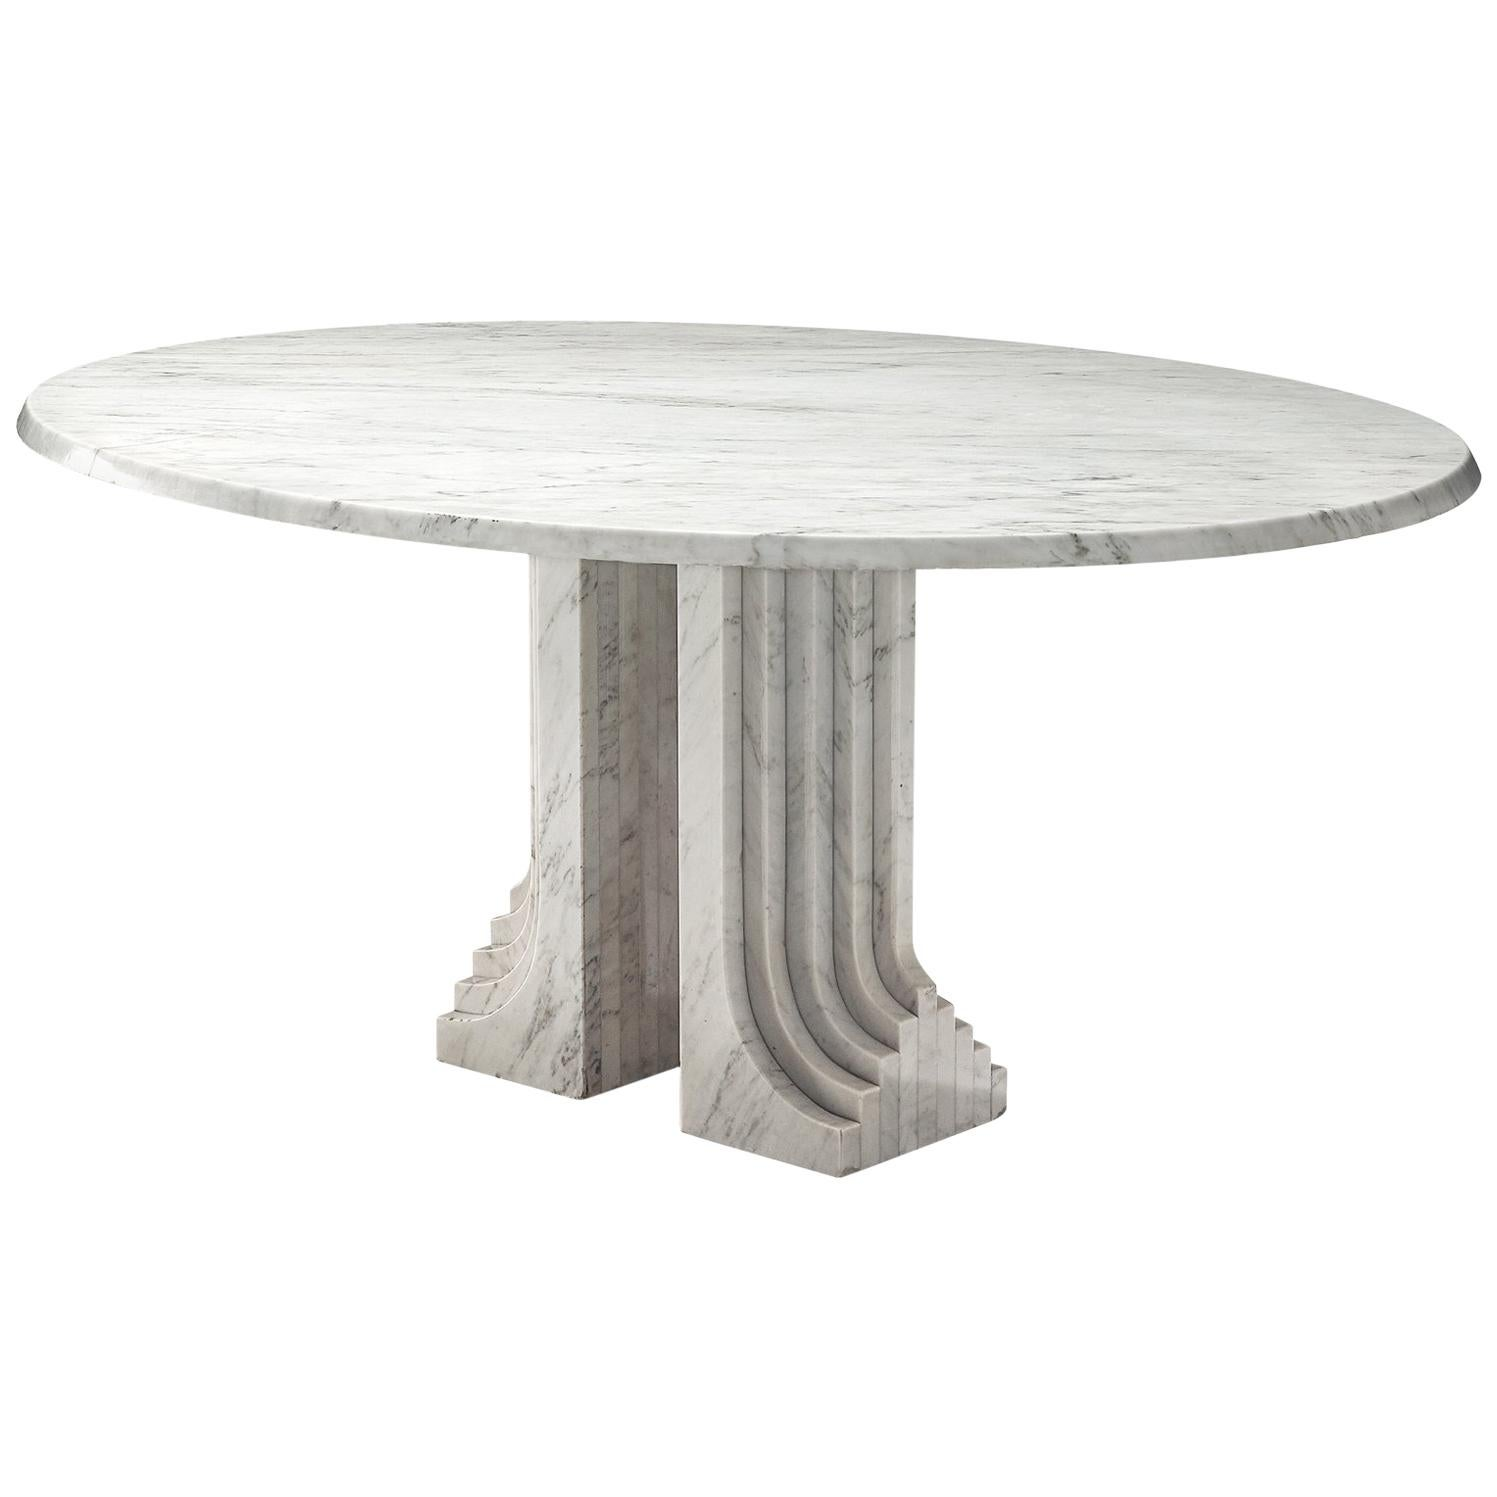 Italian Oval Dining Table In White Marble